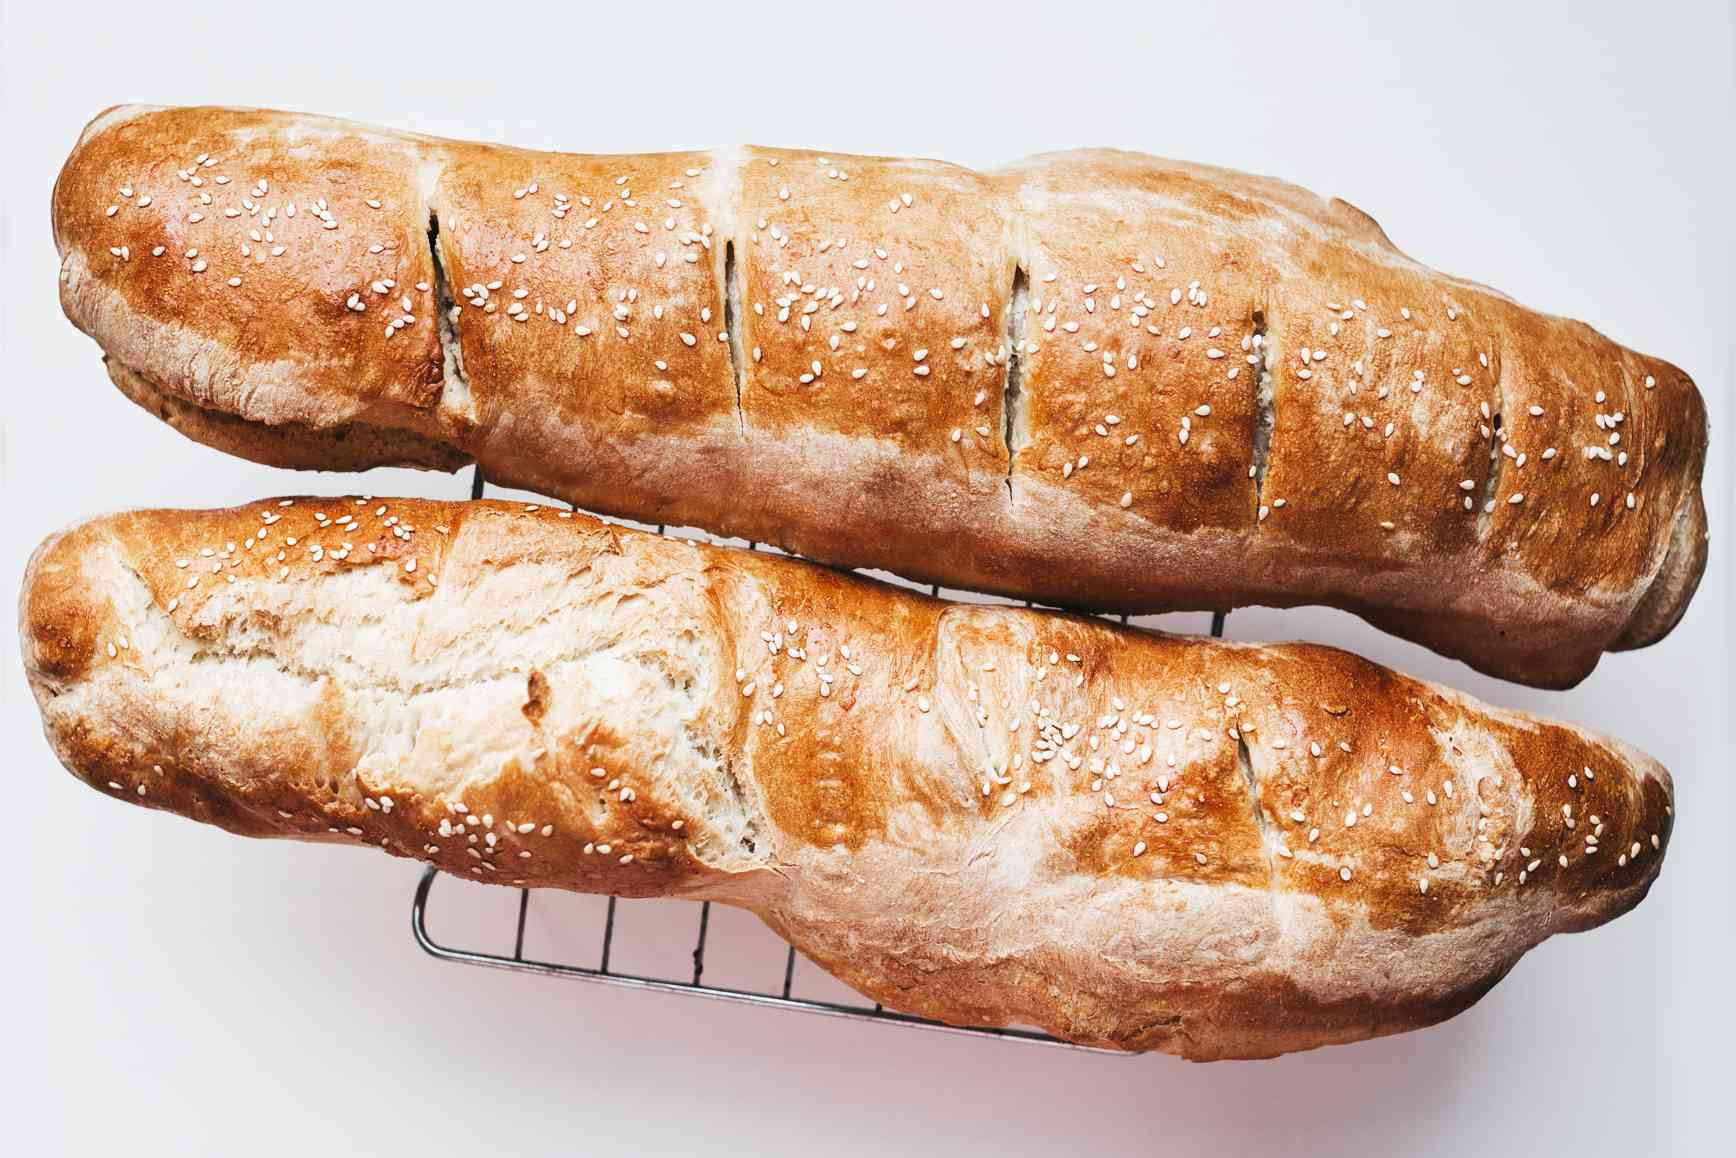 Baked French bread cooling on a wire rack